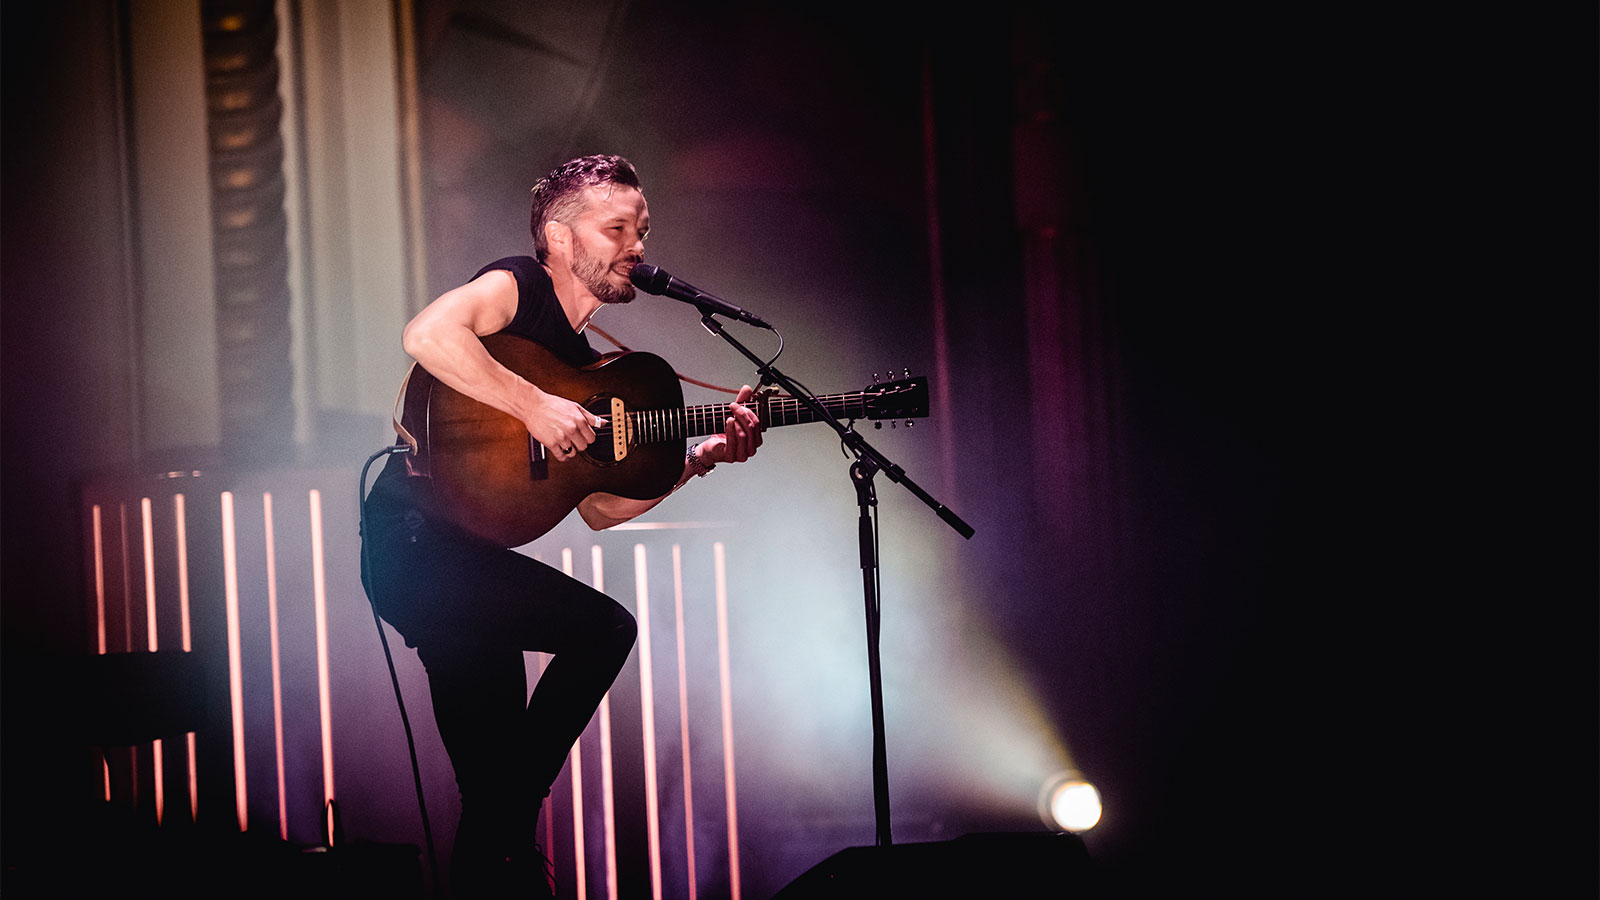 2018 09 27   De Roma   The Tallest Man On Earth   02 Concert   011